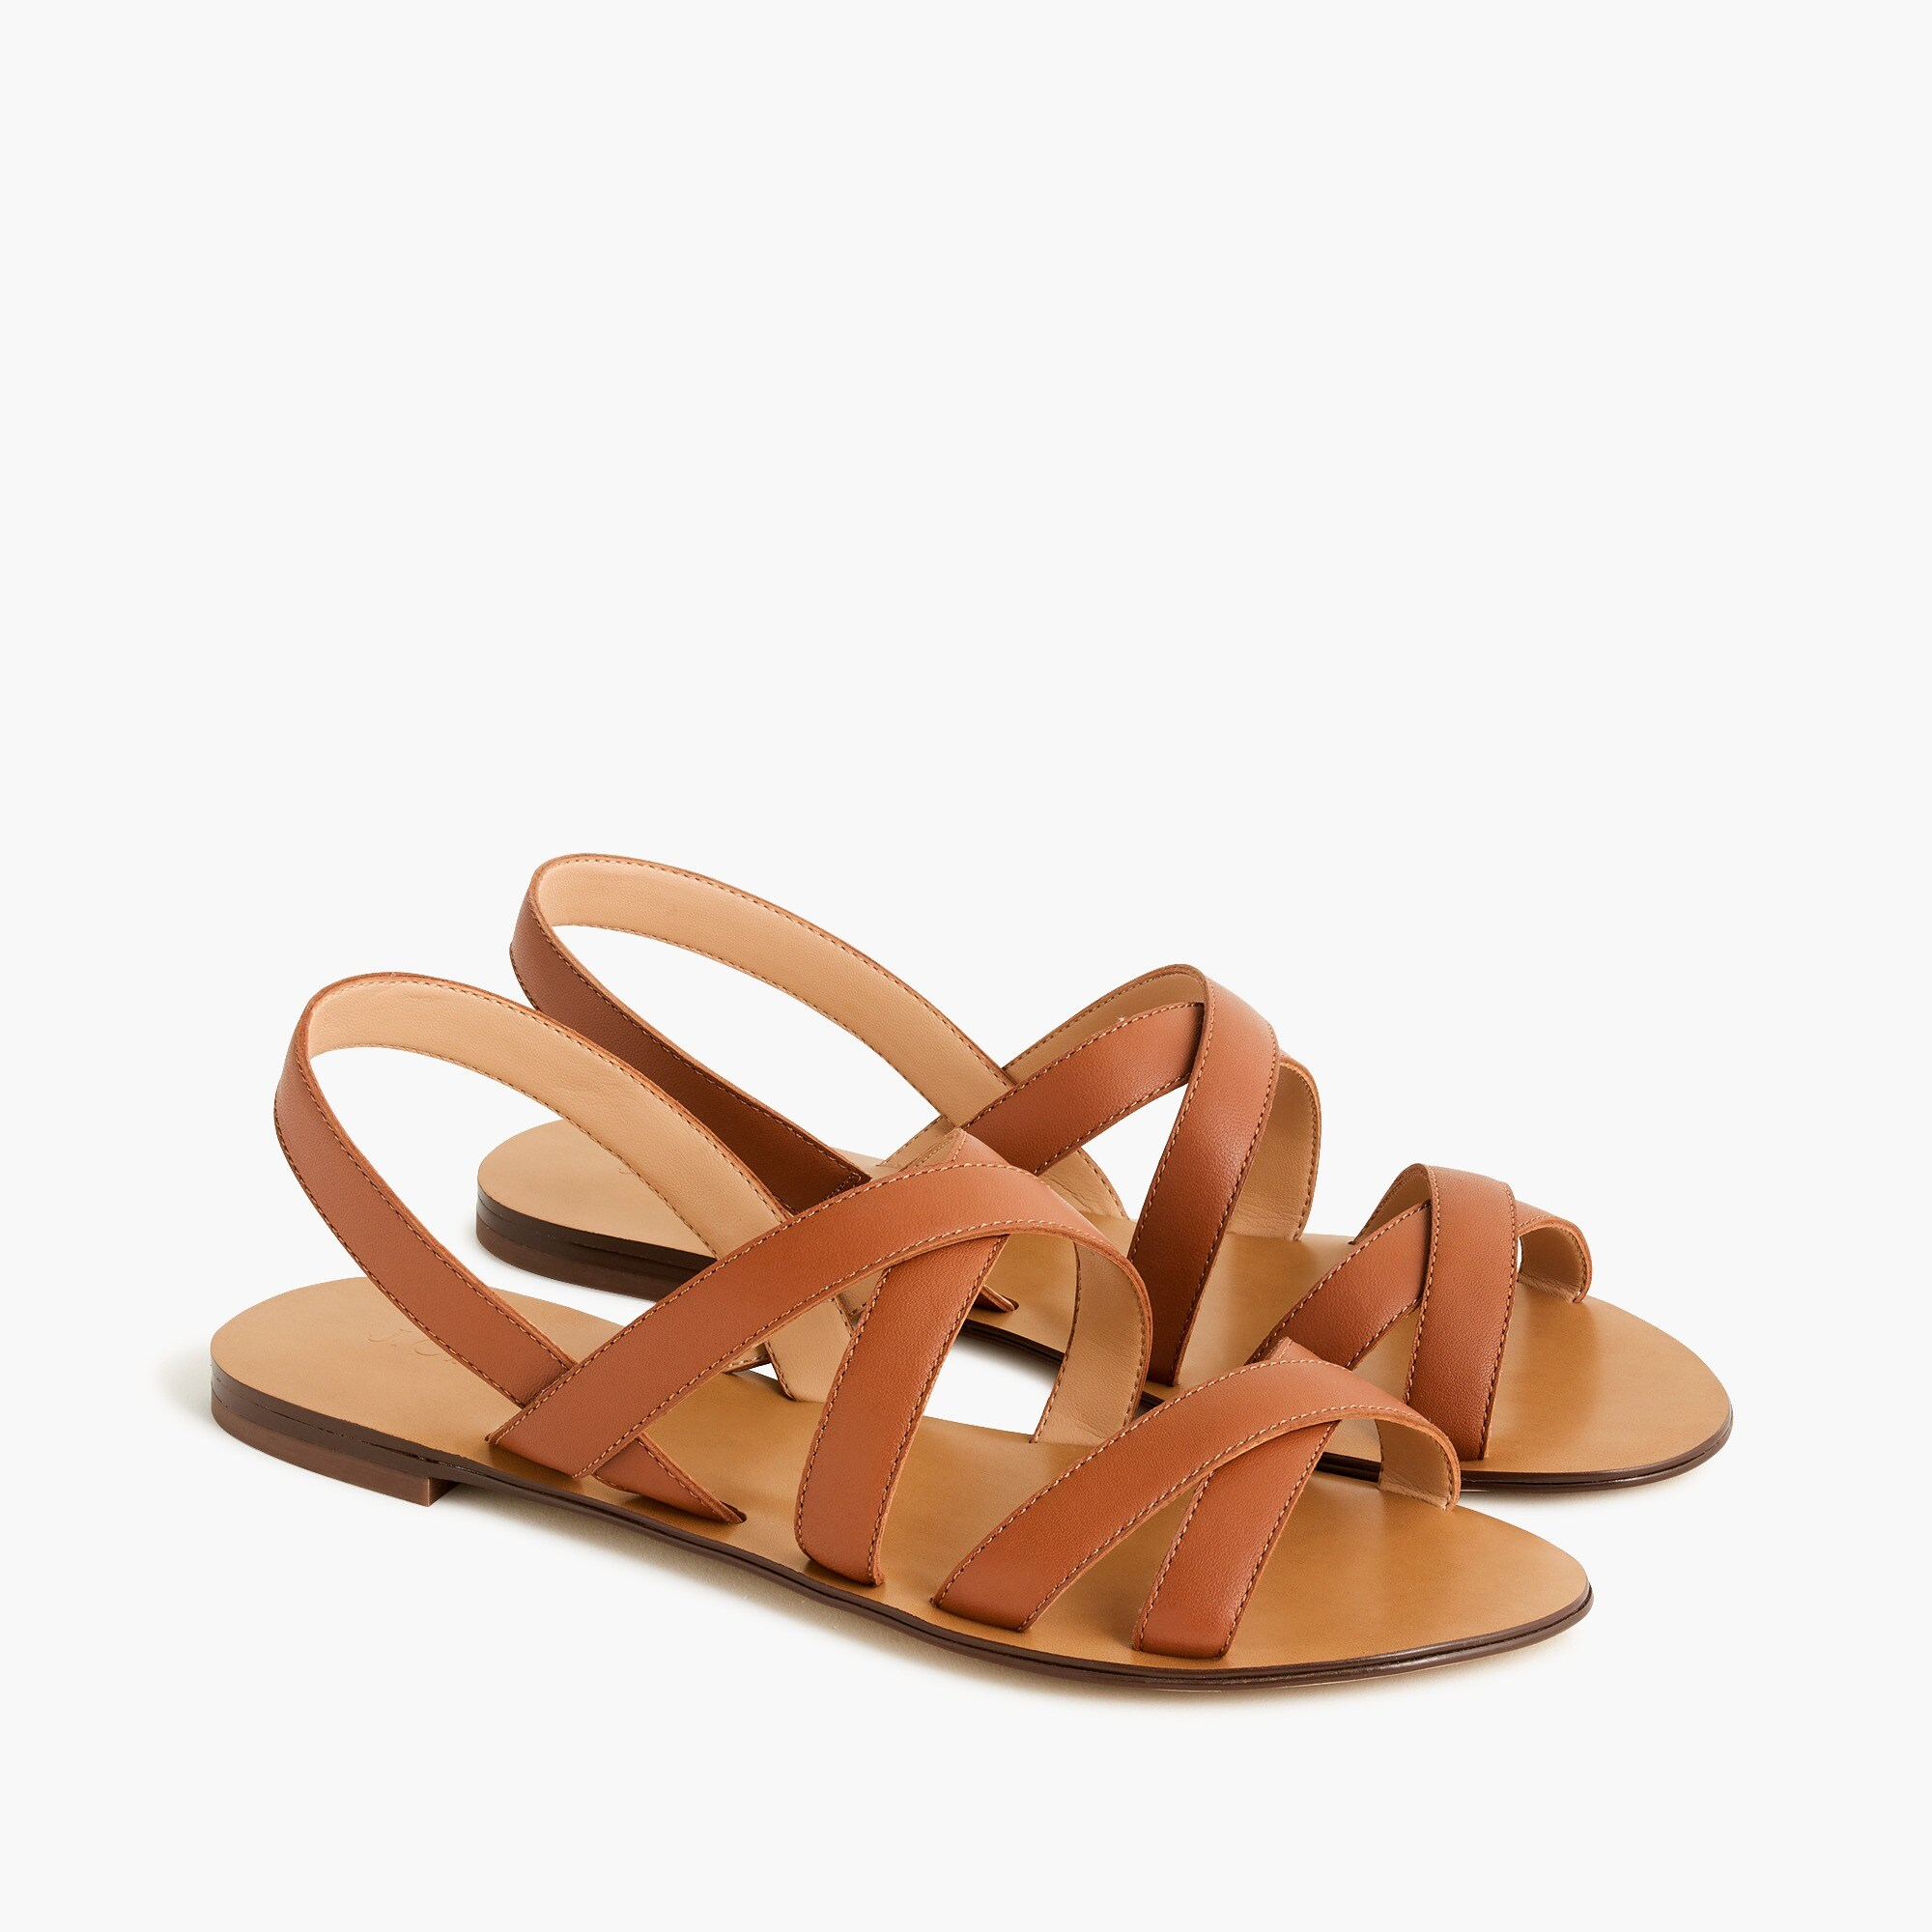 Cross-strap sandals in leather